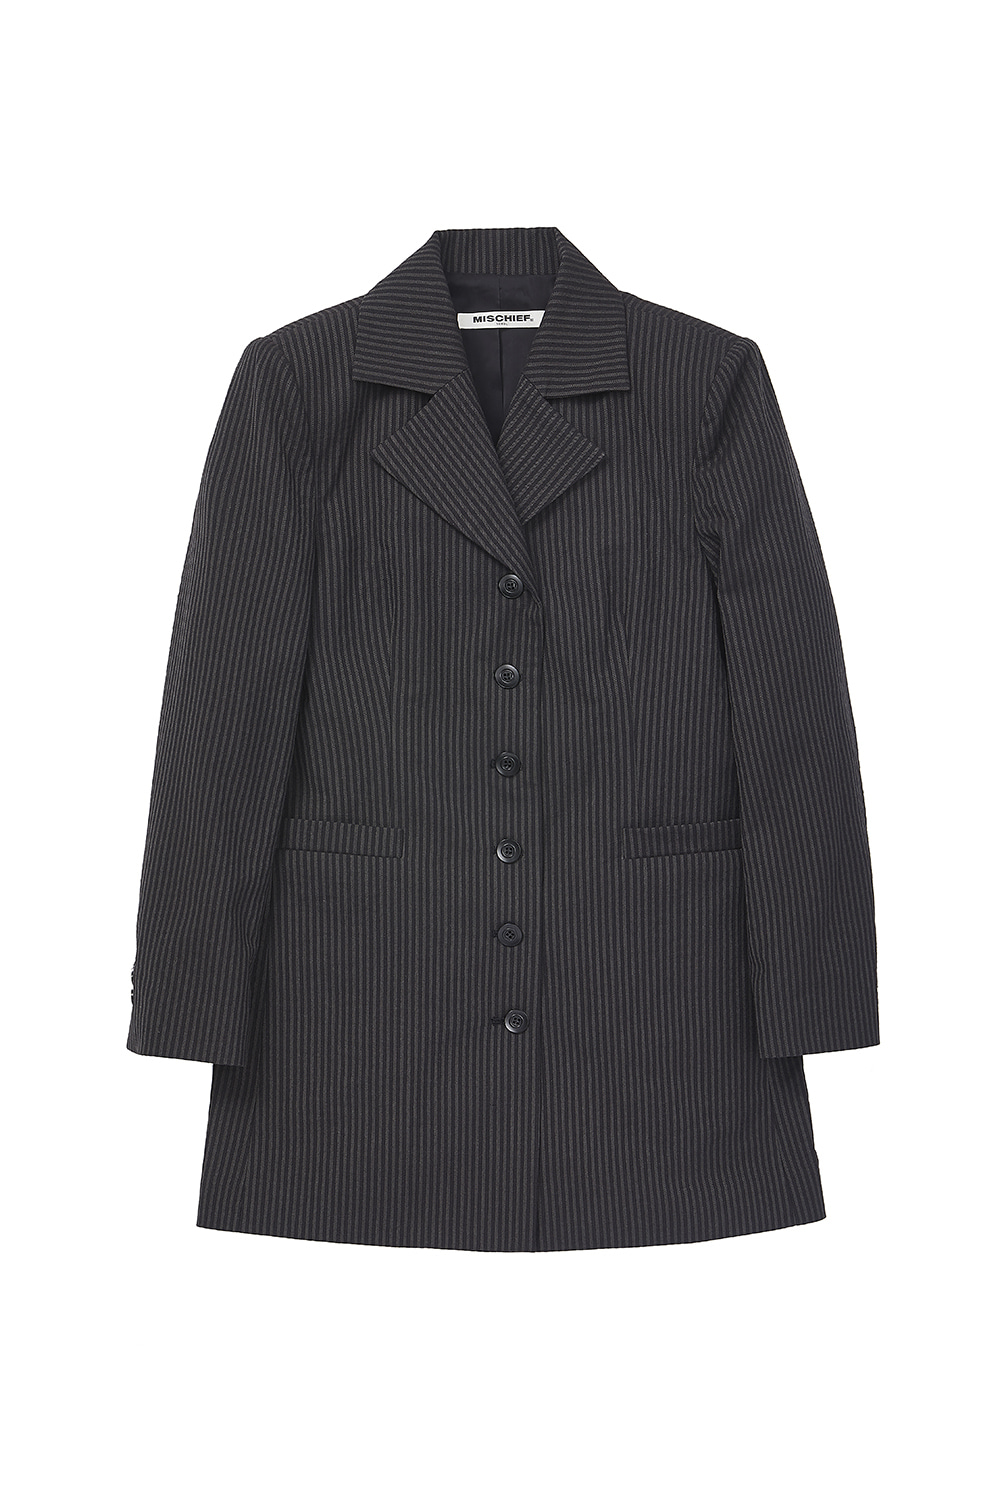 LONG SUIT JACKET_stripe black/gray